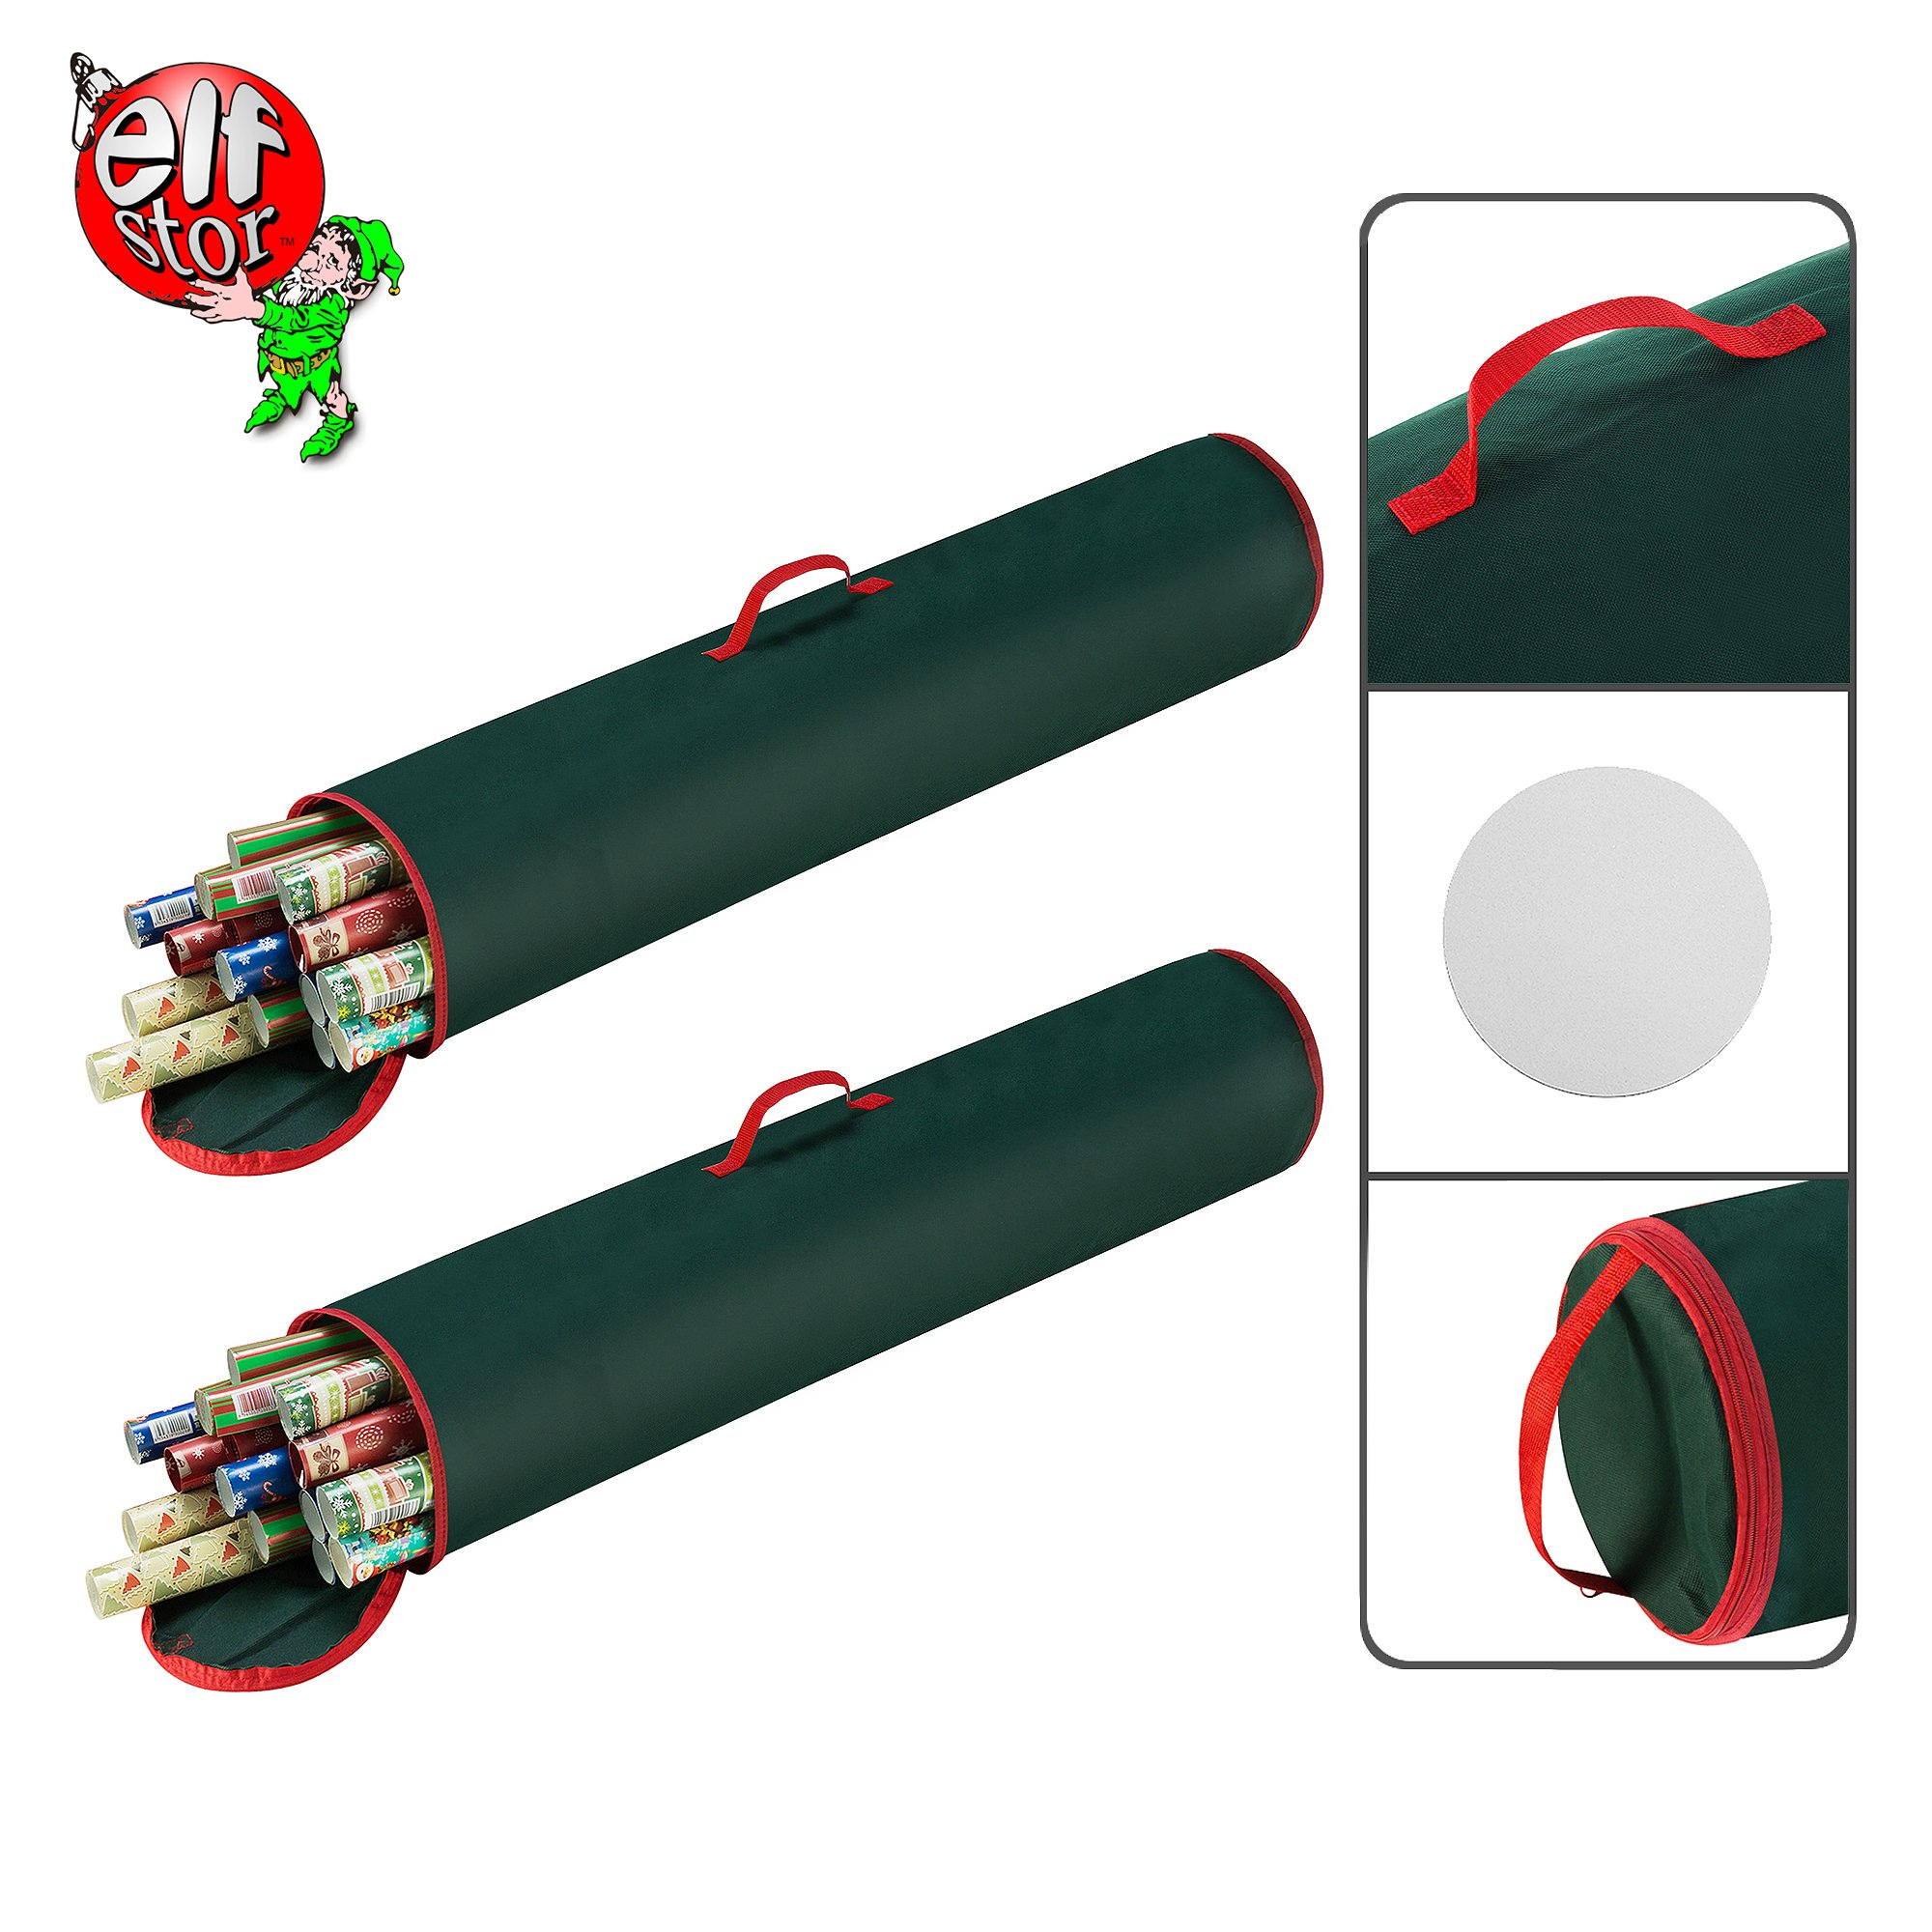 Elf Stor 83-DT5155 Gift 40.5 inch Wrapping Paper Storage Bag   Green   Stand Up or Under Bed, Two